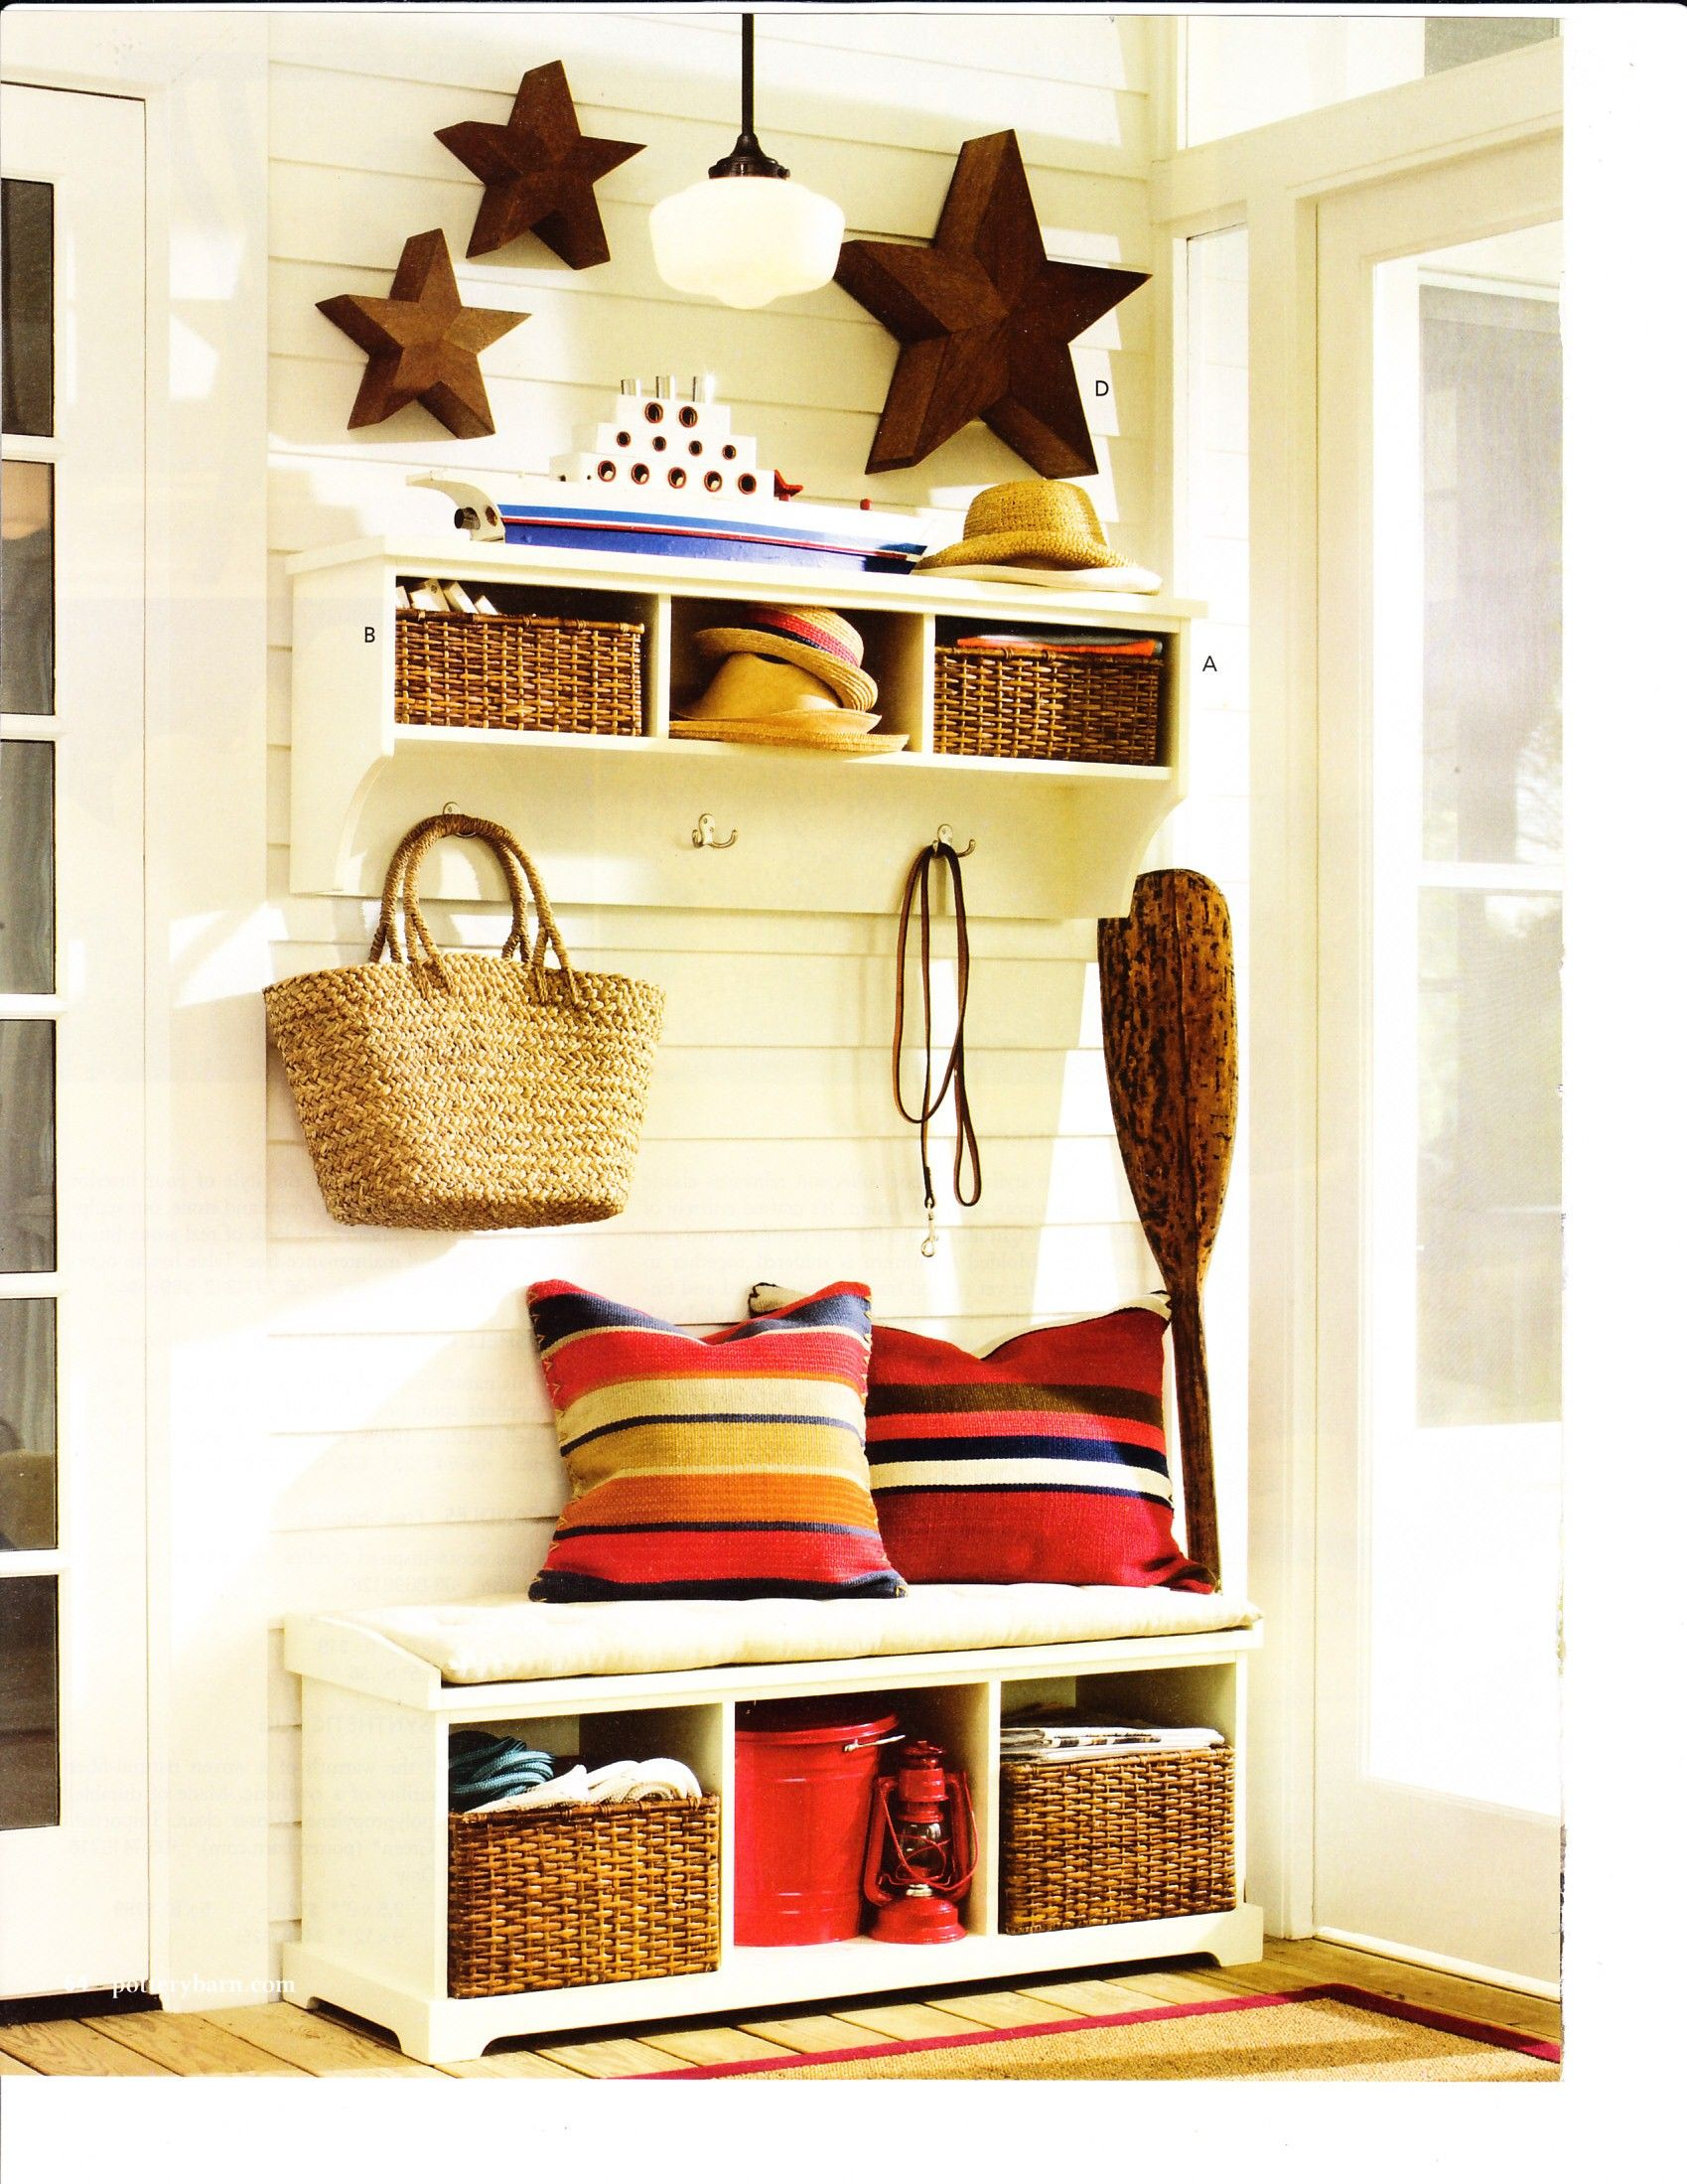 10 Things You Can Do Every Day to Be More Organized | Pinterest ...